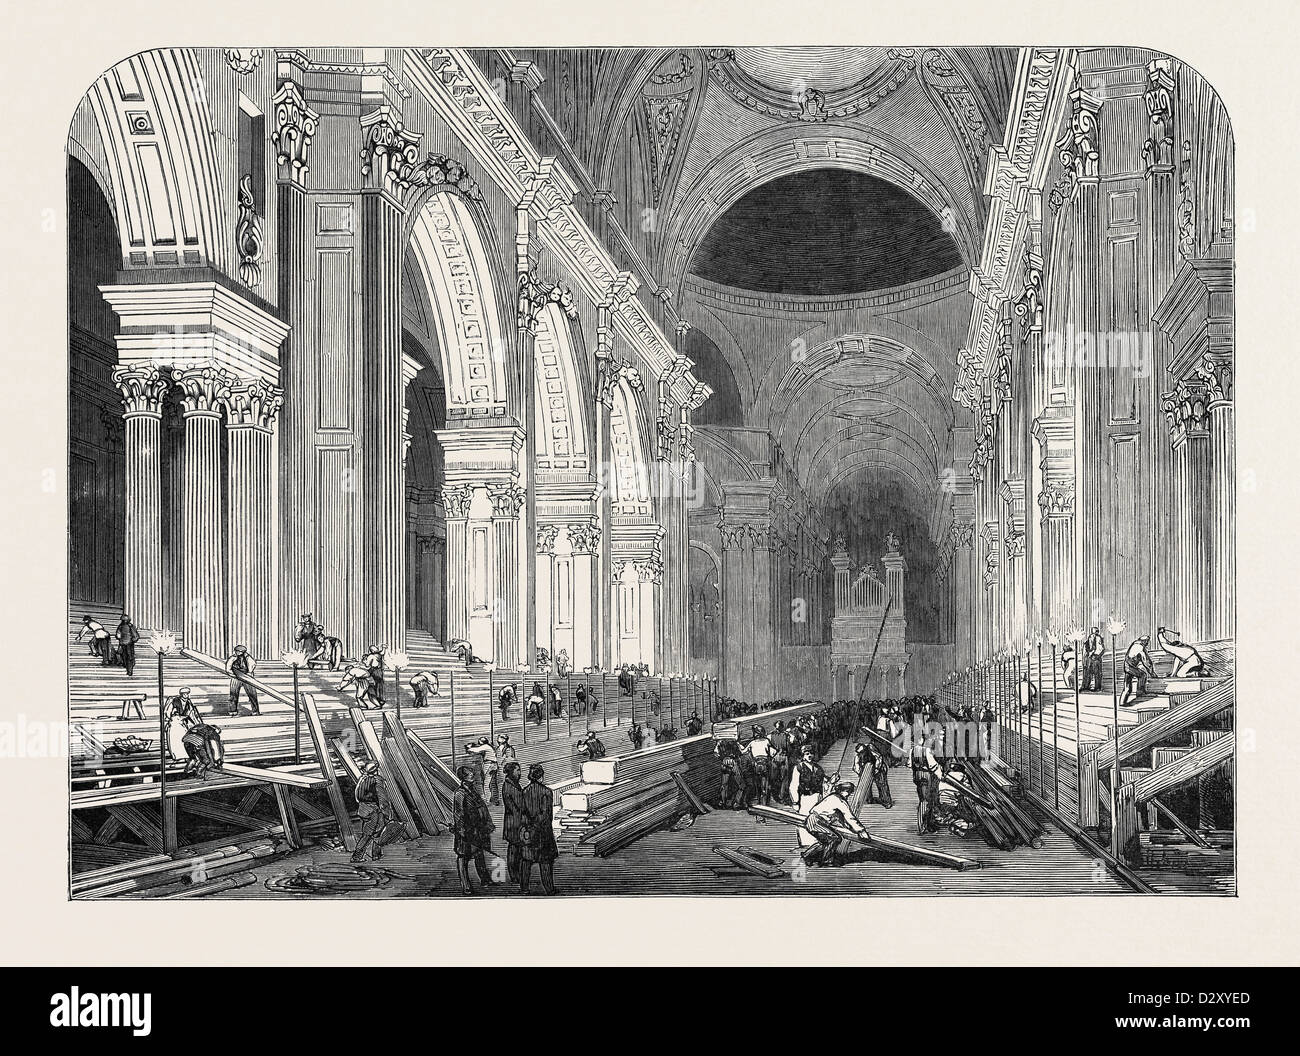 PREPARATION IN ST. PAUL'S CATHEDRAL, FOR THE FUNERAL OF THE DUKE: THE NAVE, BY GASLIGHT, 1852 - Stock Image